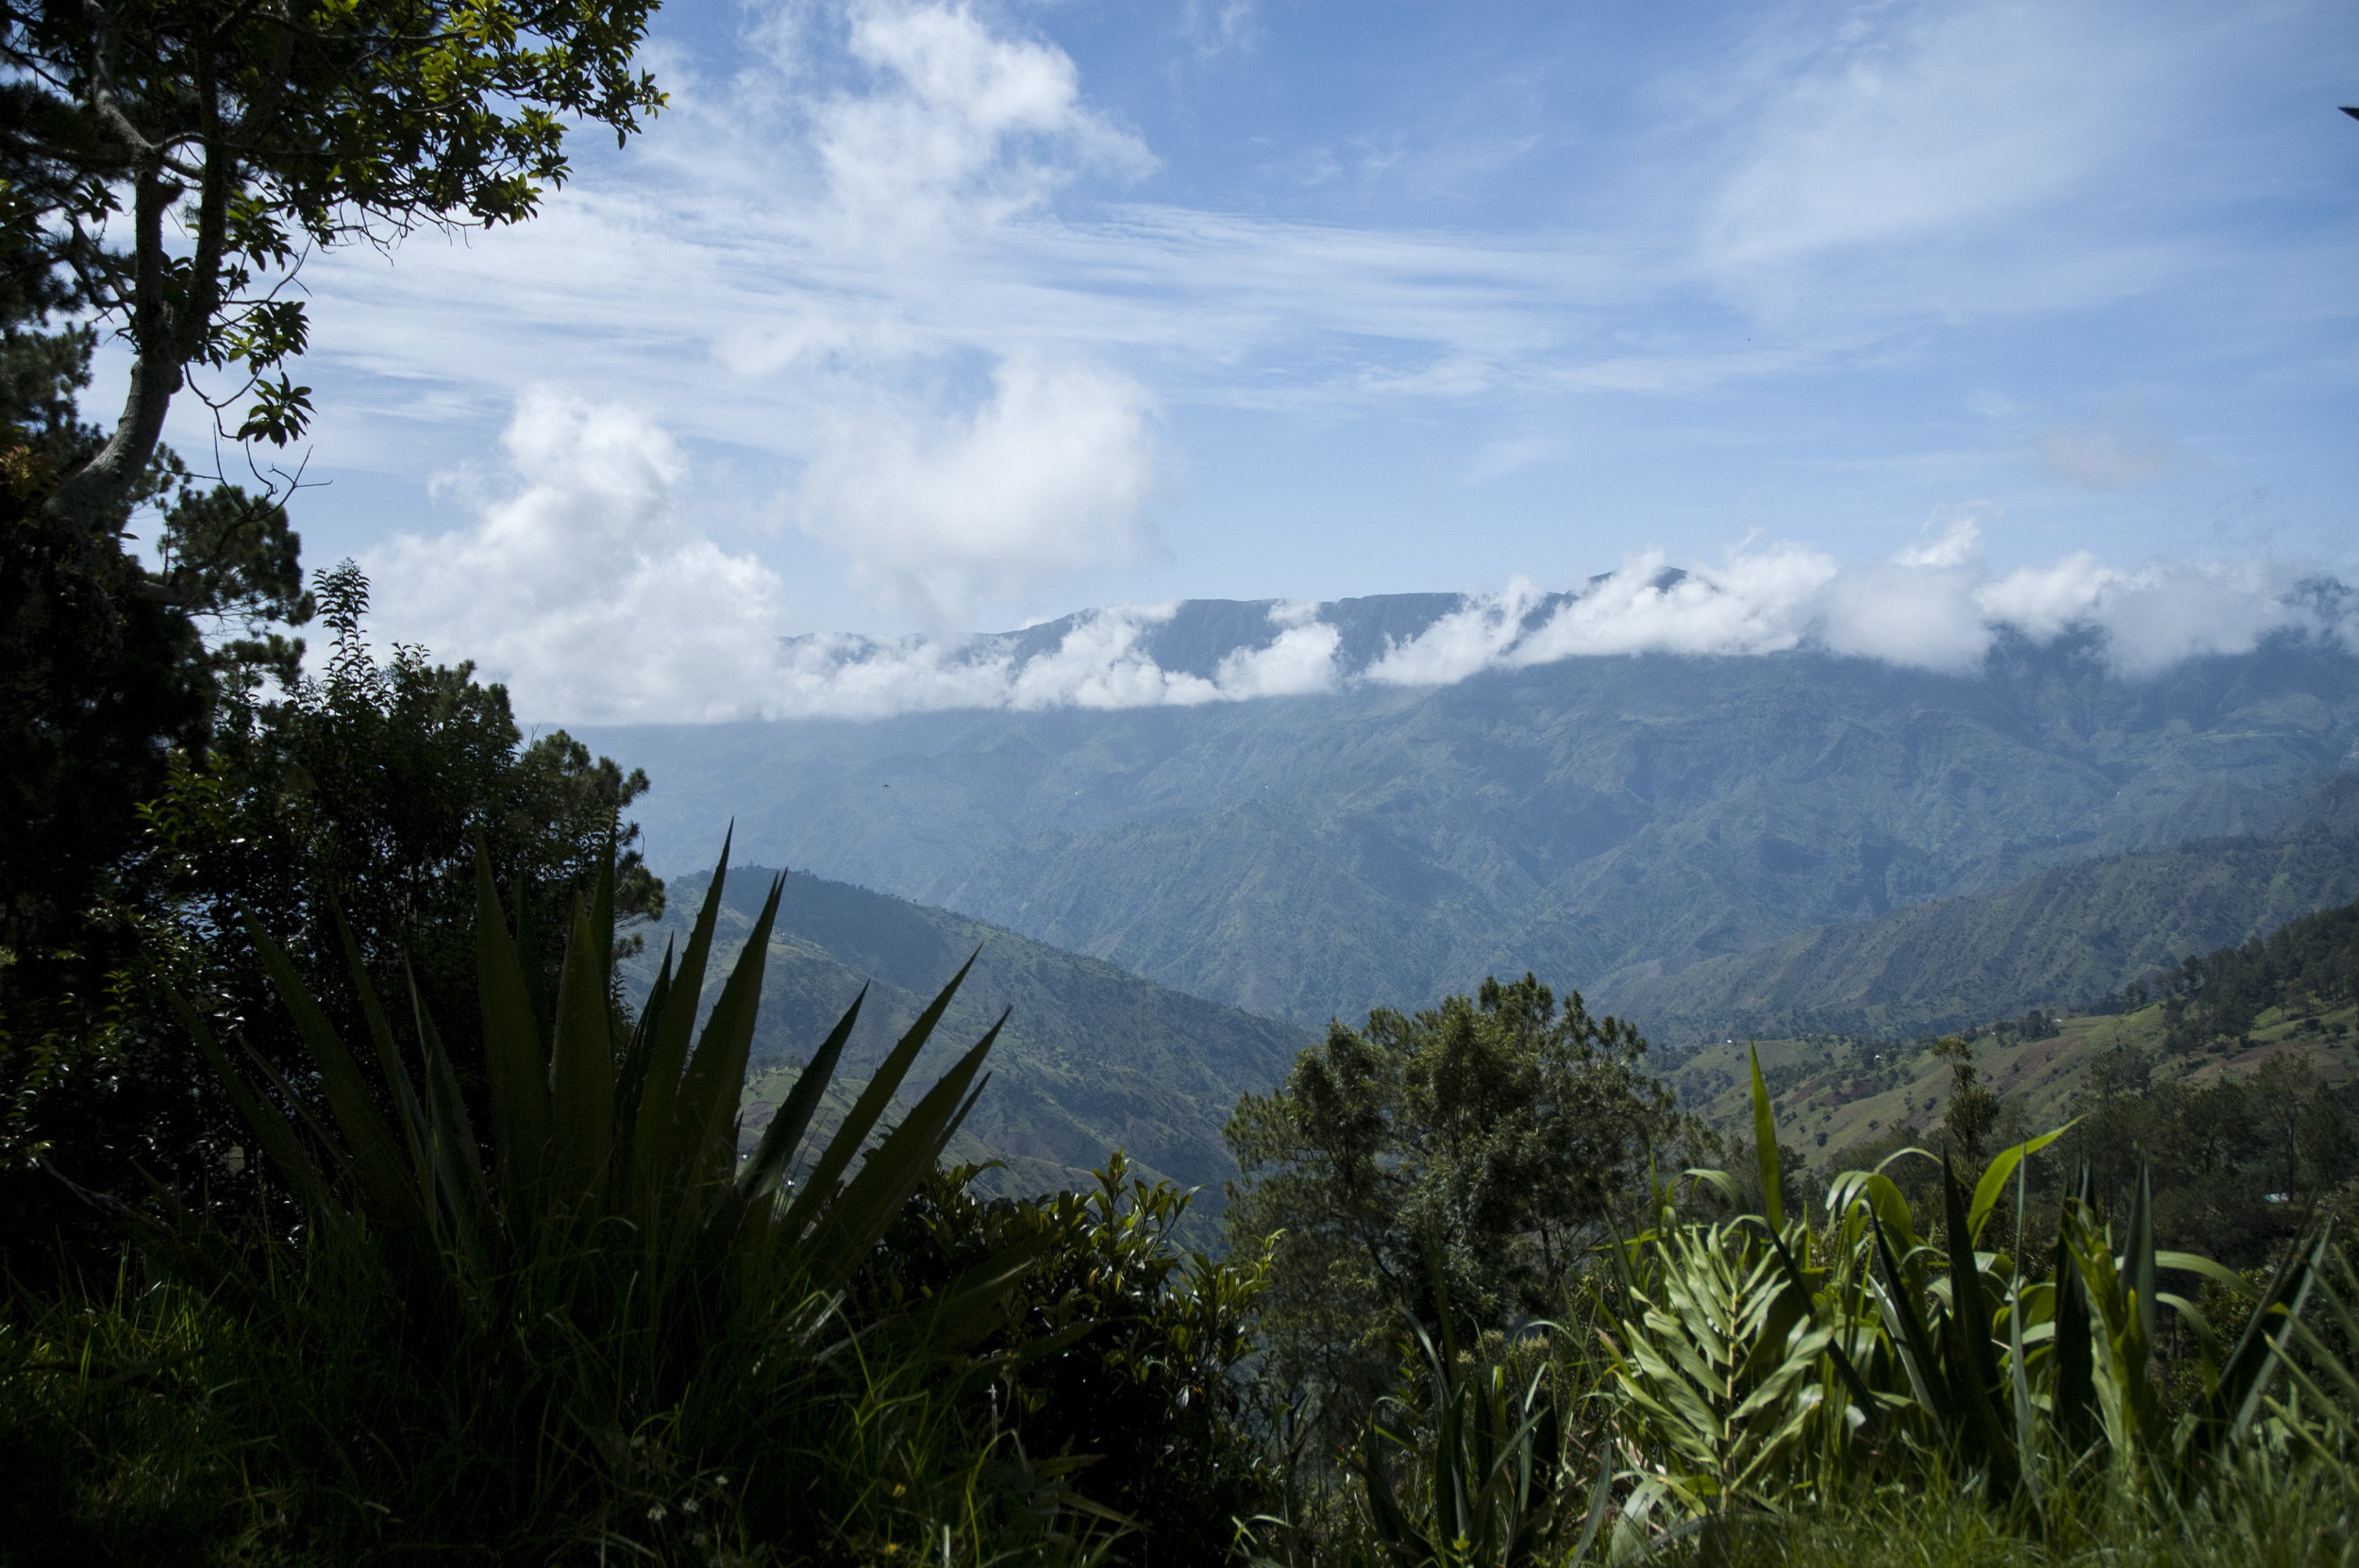 View of mountains from The Lodge, Furcy